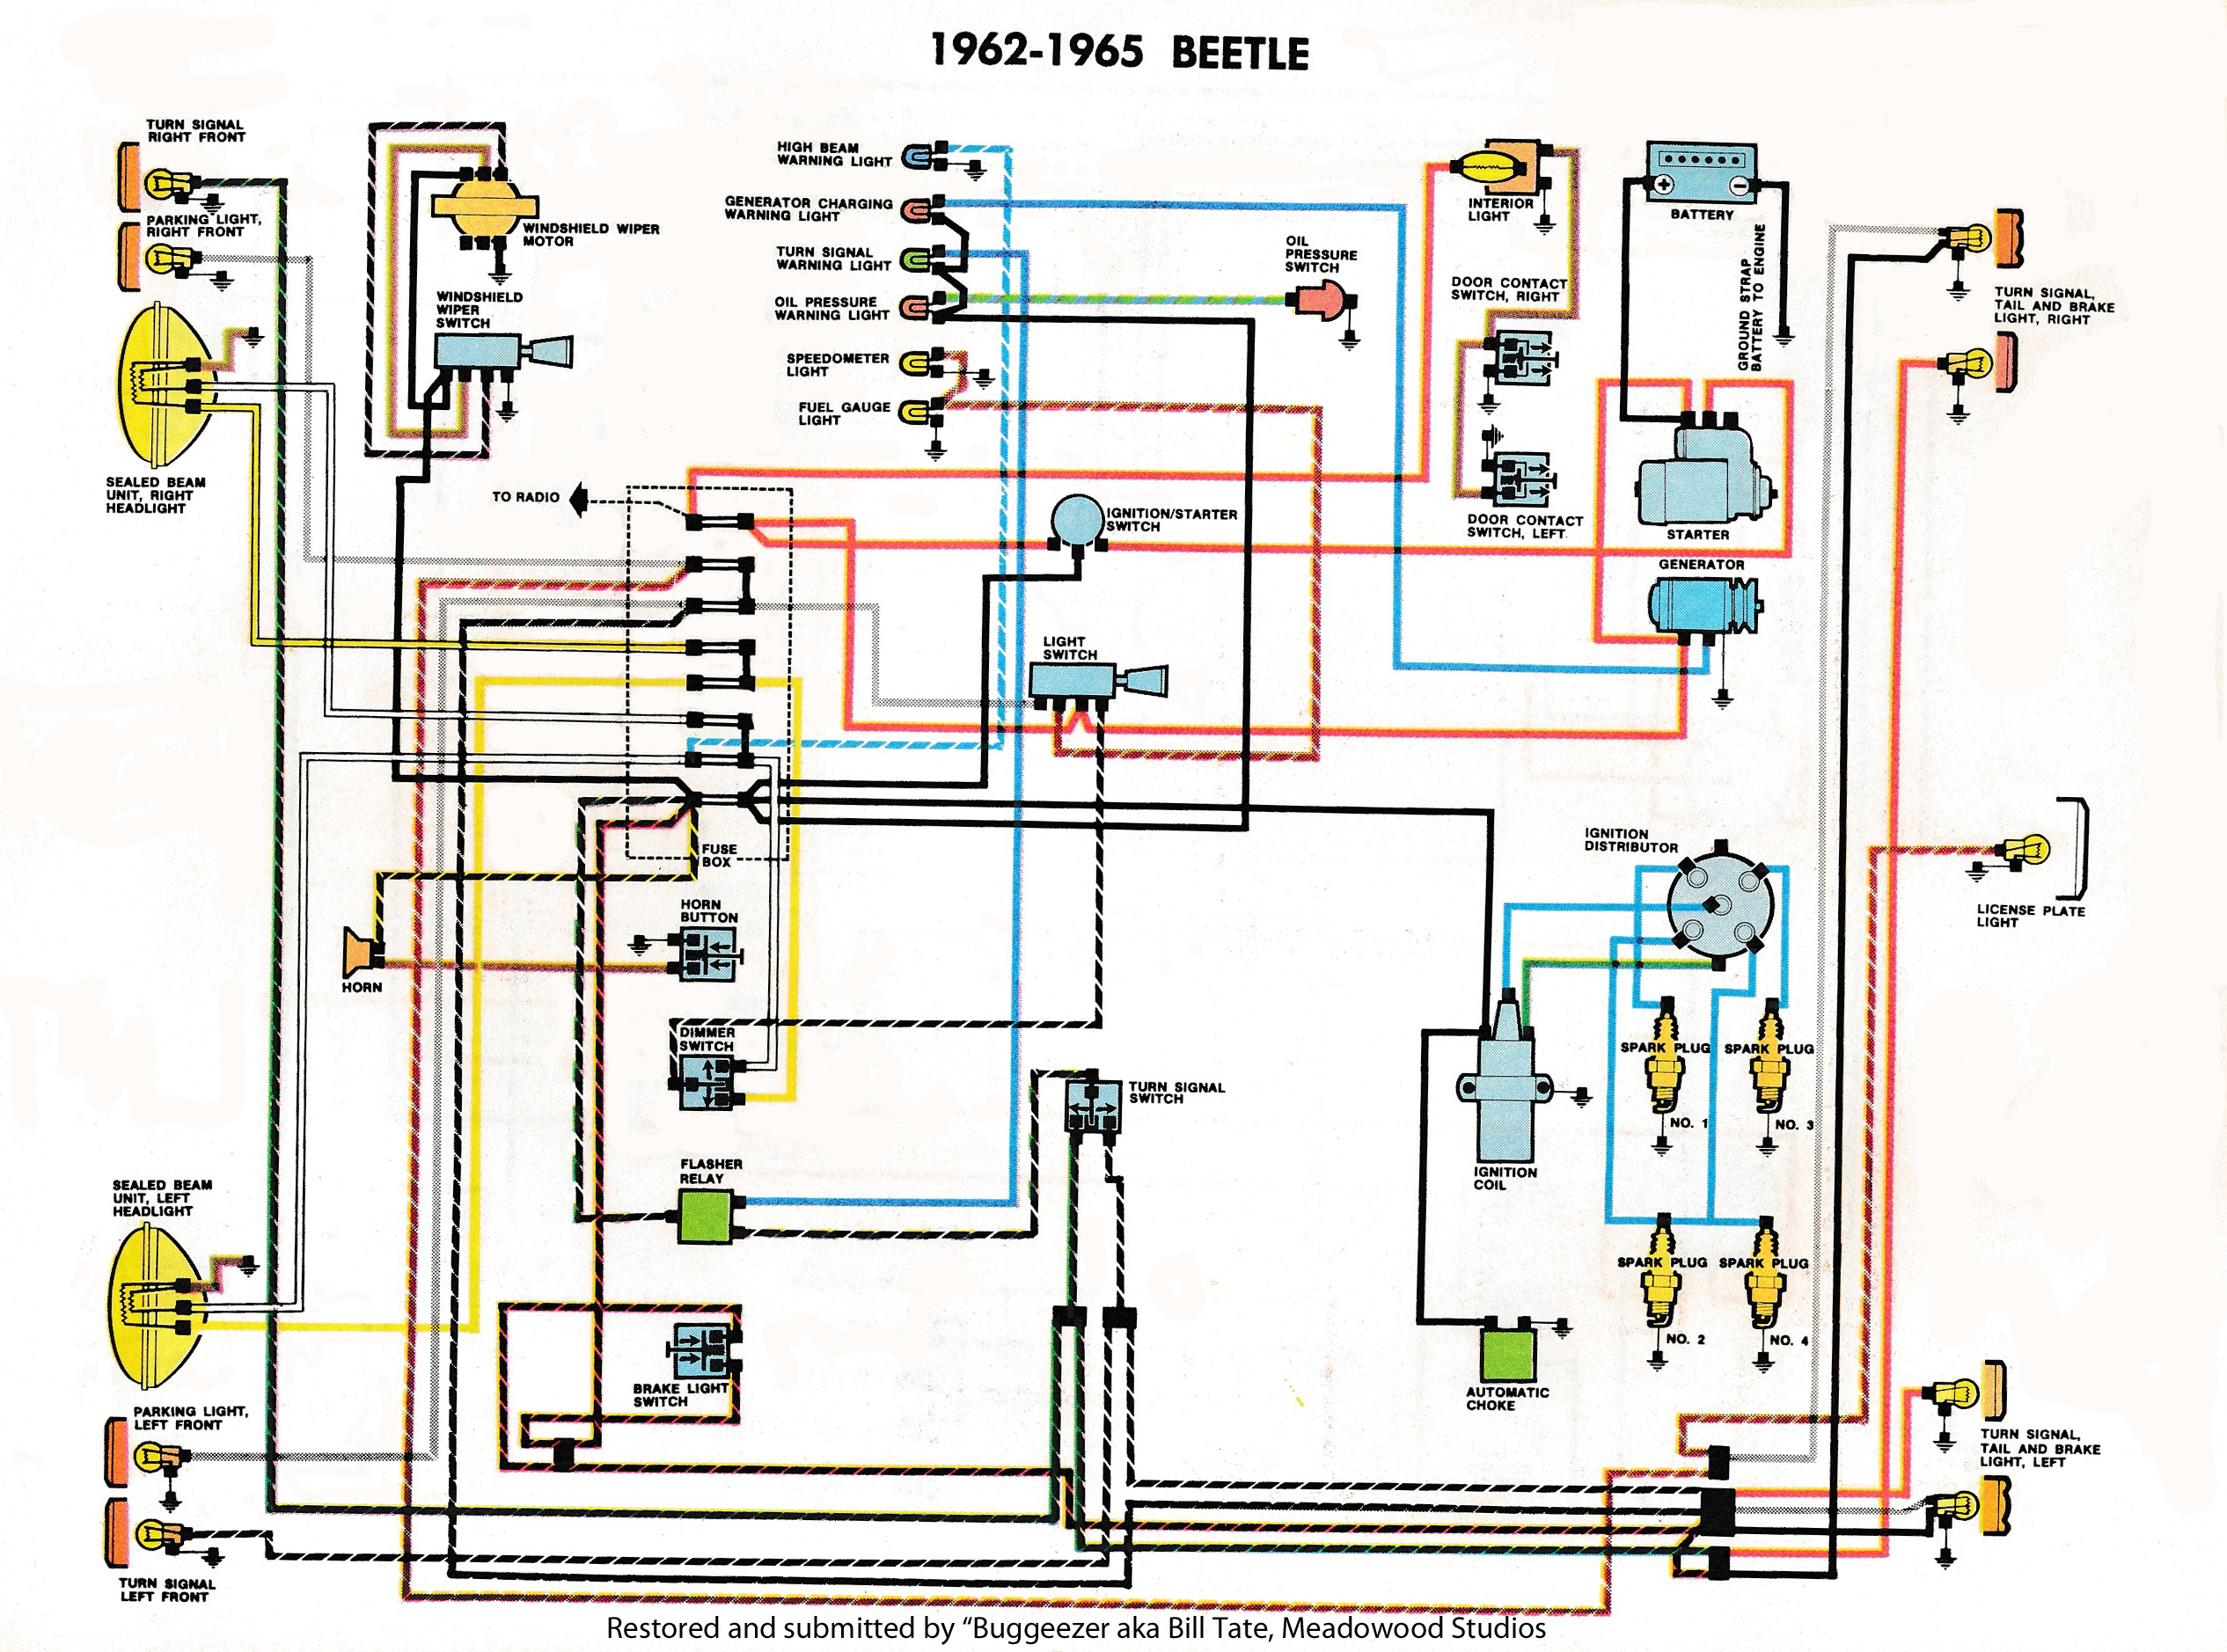 1970 vw beetle fuse box wiring diagram1970 vw fuse diagram wiring diagramwiring diagram for 1970 vw beetle wiring diagram detailedthesamba com type